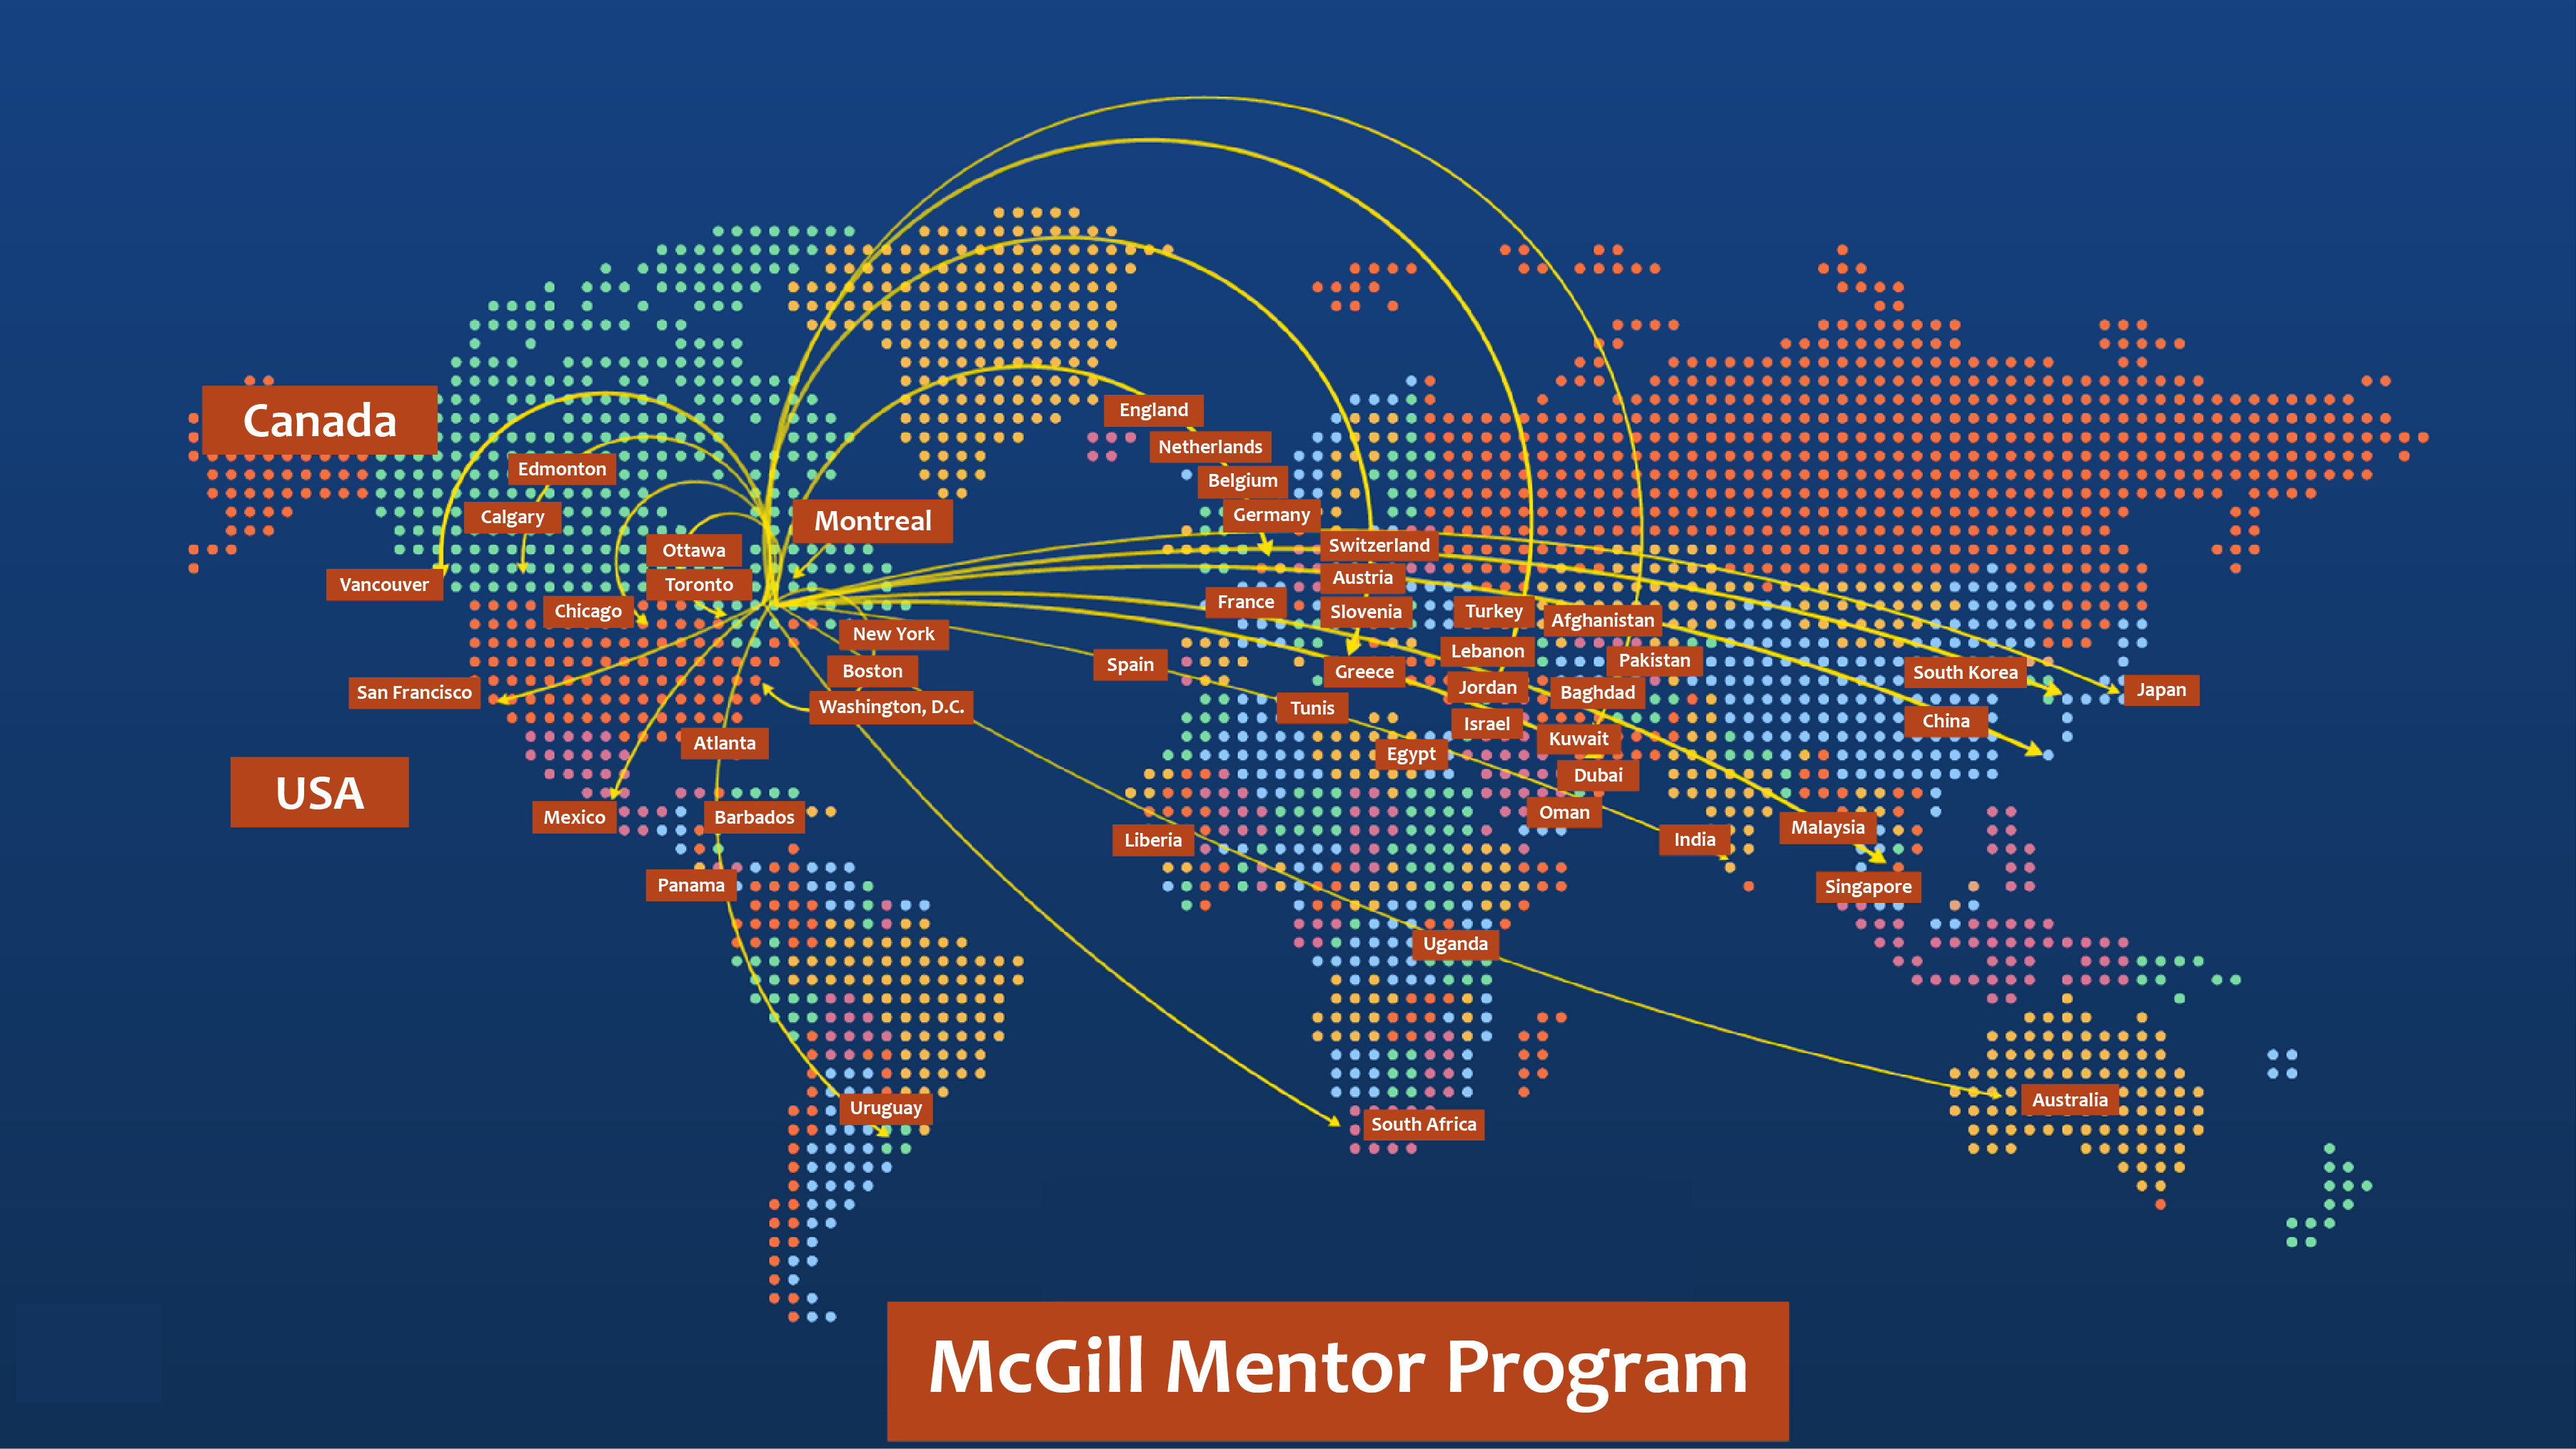 mentor program career planning service mcgill university is designed to connect mcgill students mcgill alumni allowing them the opportunity to gain valuable experience and advice for career development